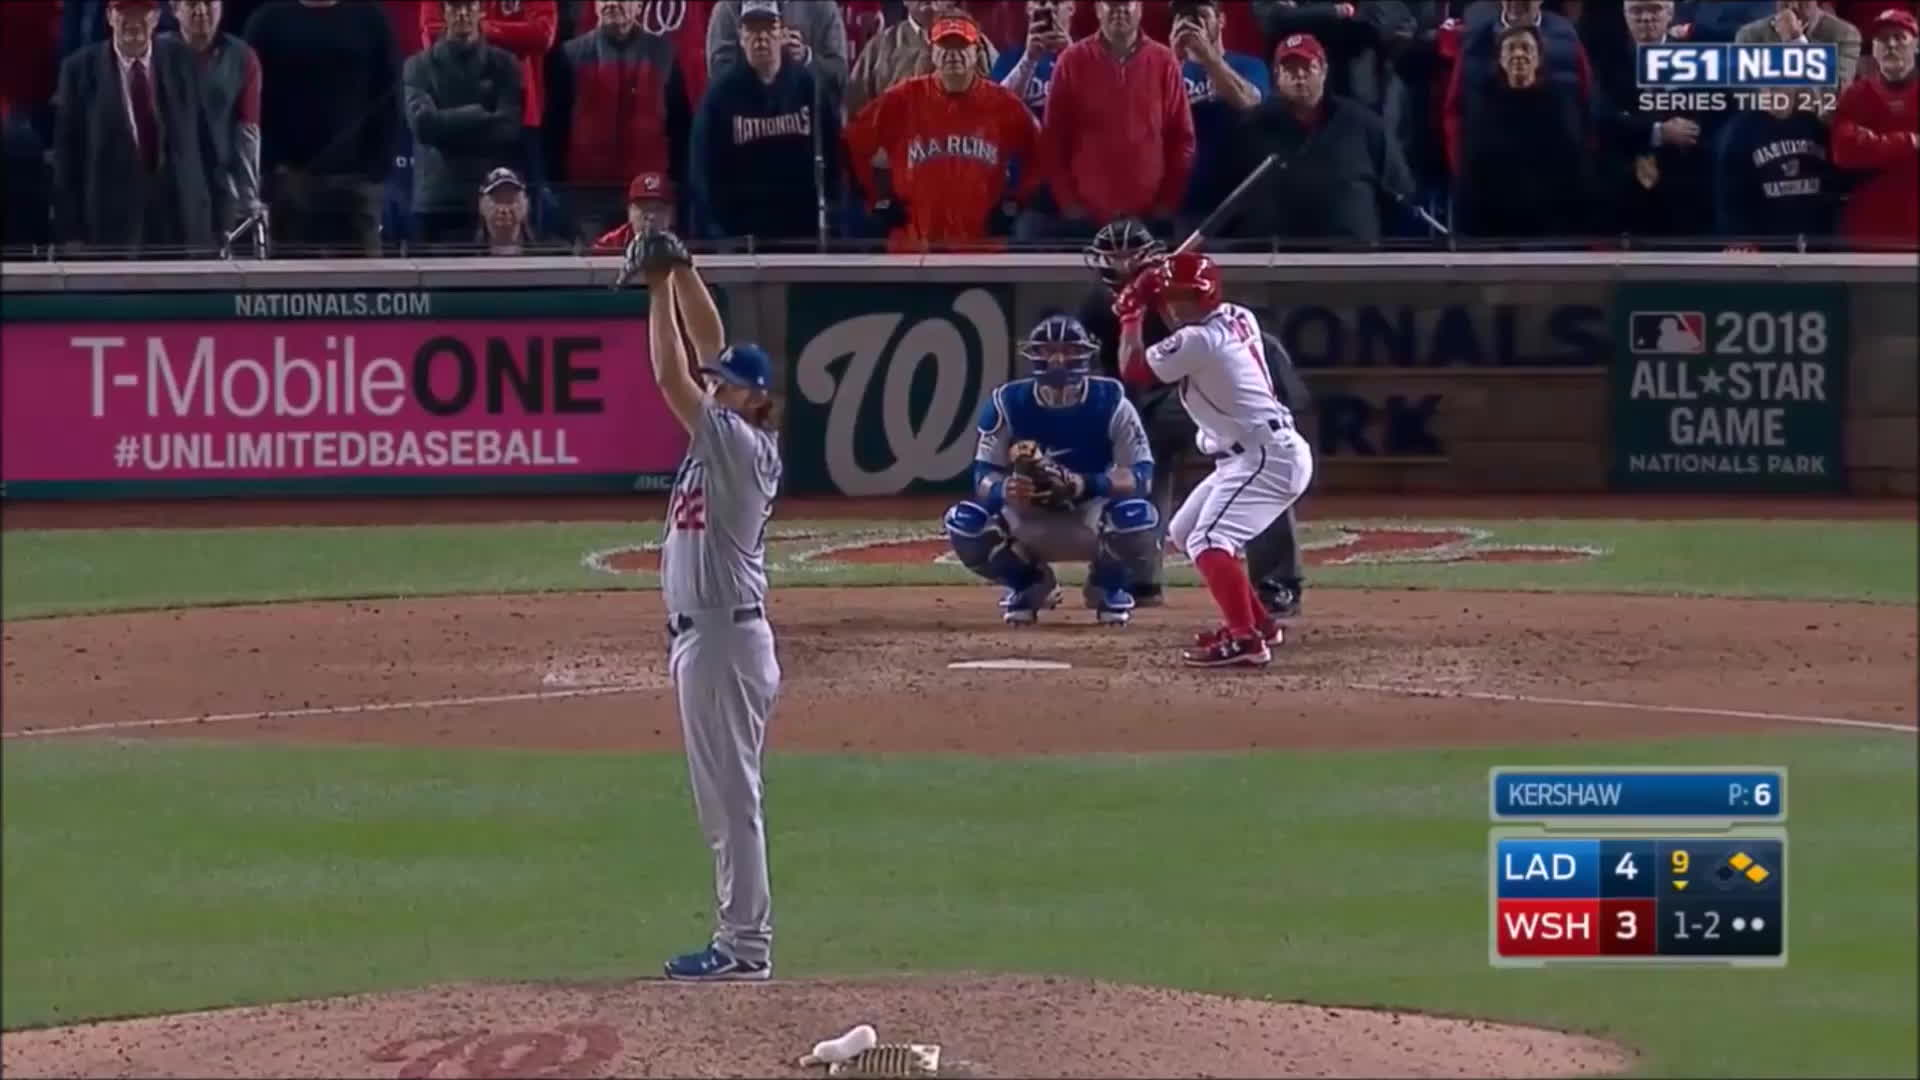 filthypitches, Kershaw Curveball that knocked out the Nationals (NLDS Game 5) GIFs